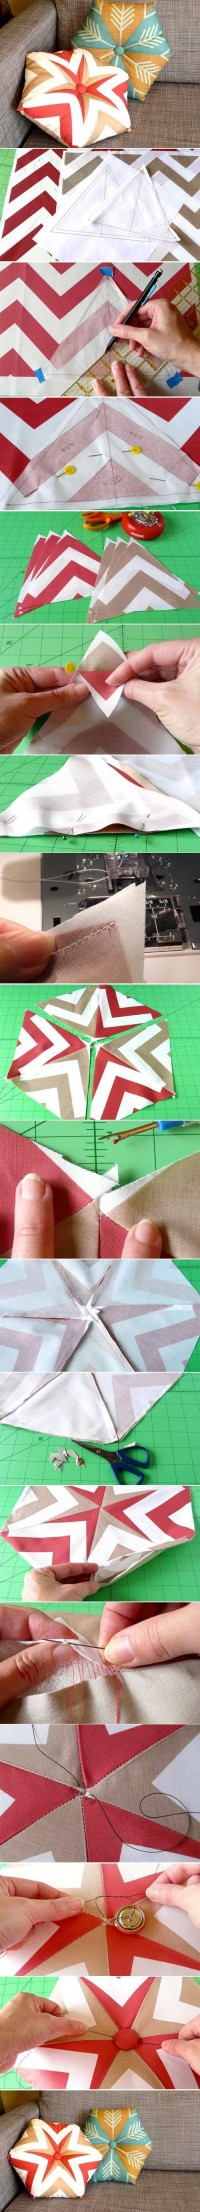 DIY Nice Decorative Pillow DIY Projects | UsefulDIY.com